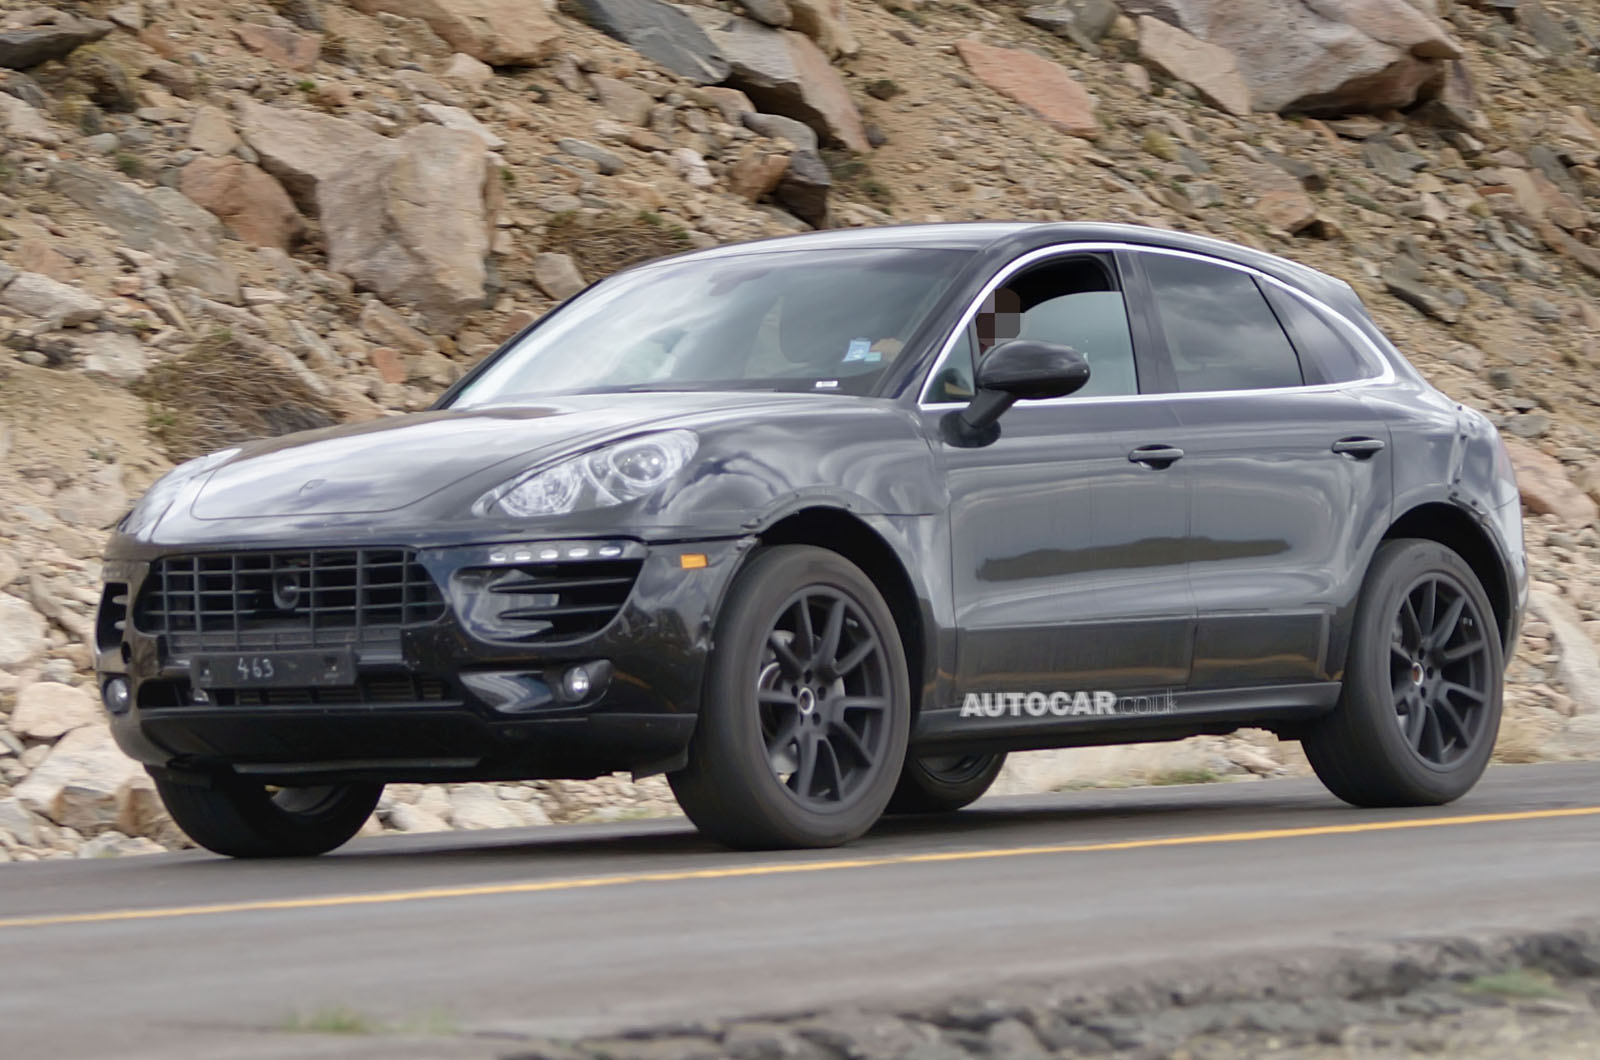 spyshots porsche macan spotted testing in the u s gtspirit. Black Bedroom Furniture Sets. Home Design Ideas